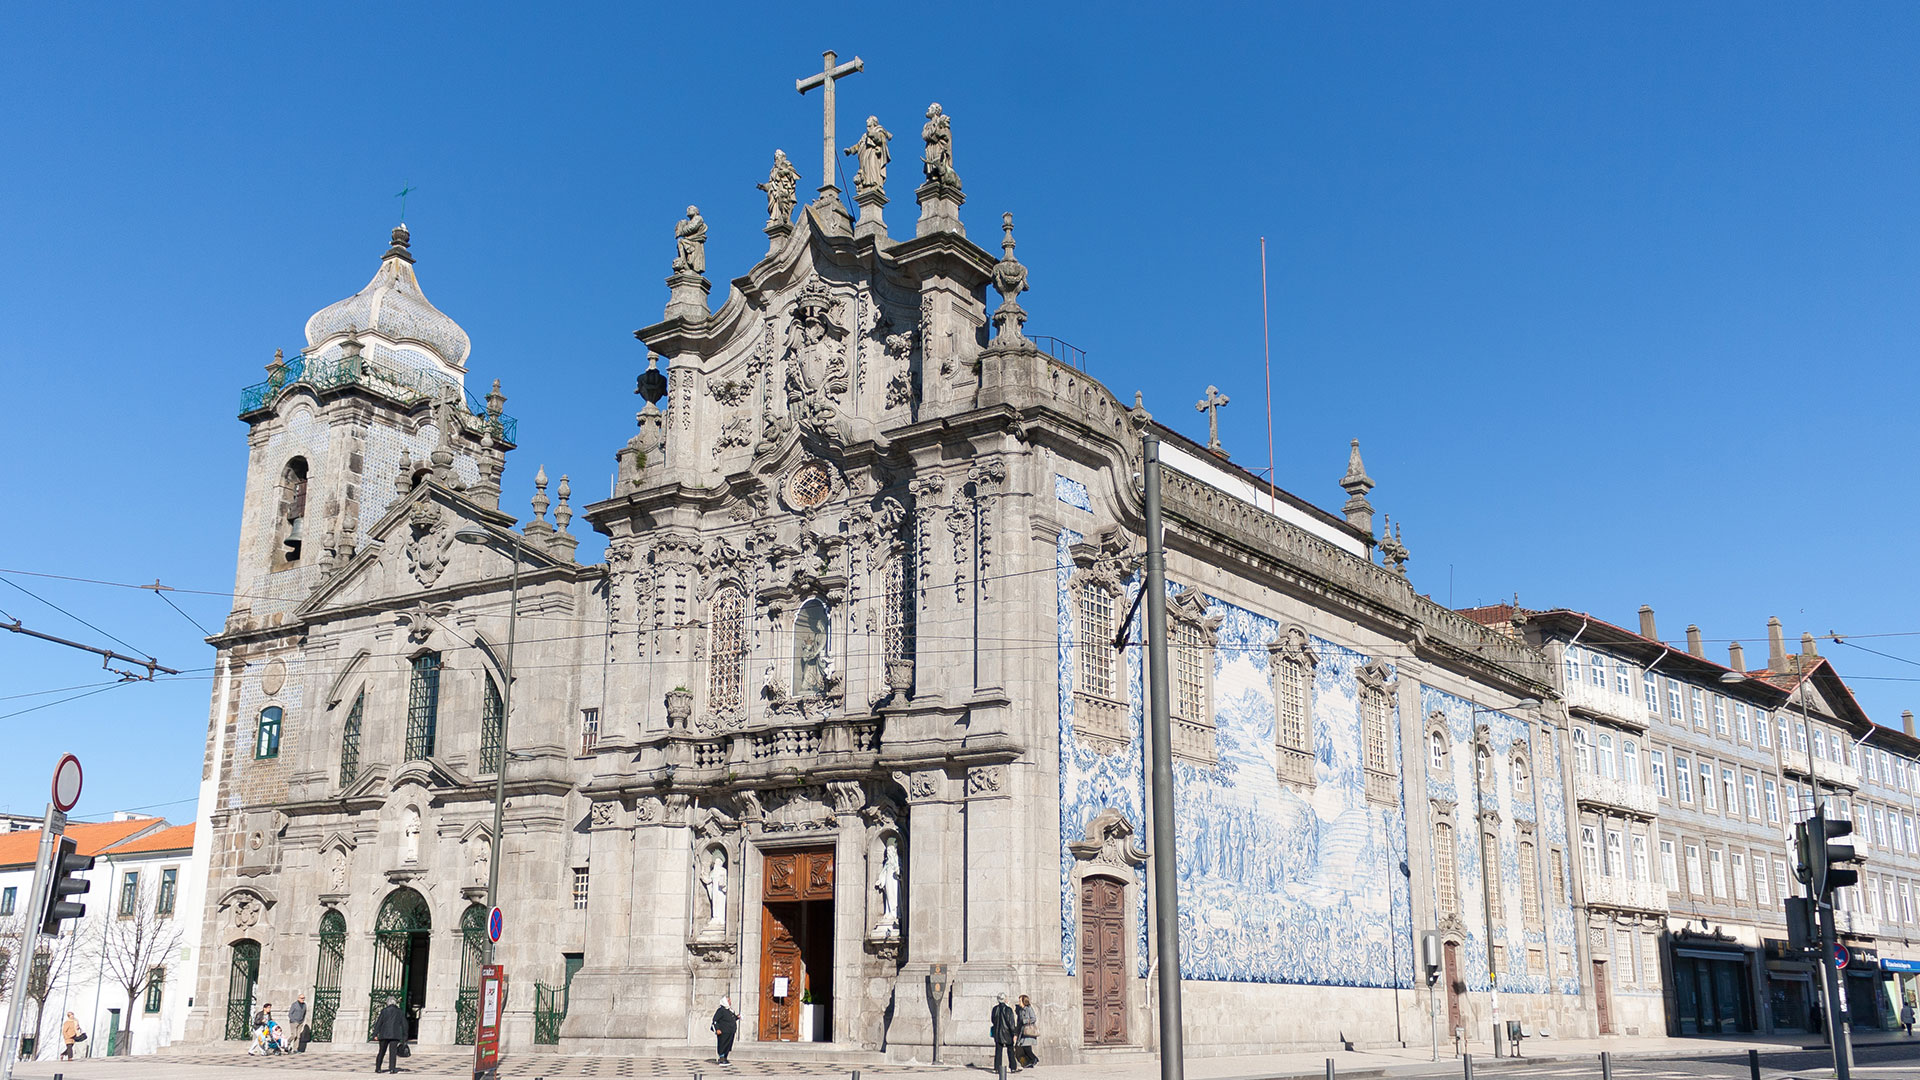 Carmo and Carmelitas | Porto: the city of churches.